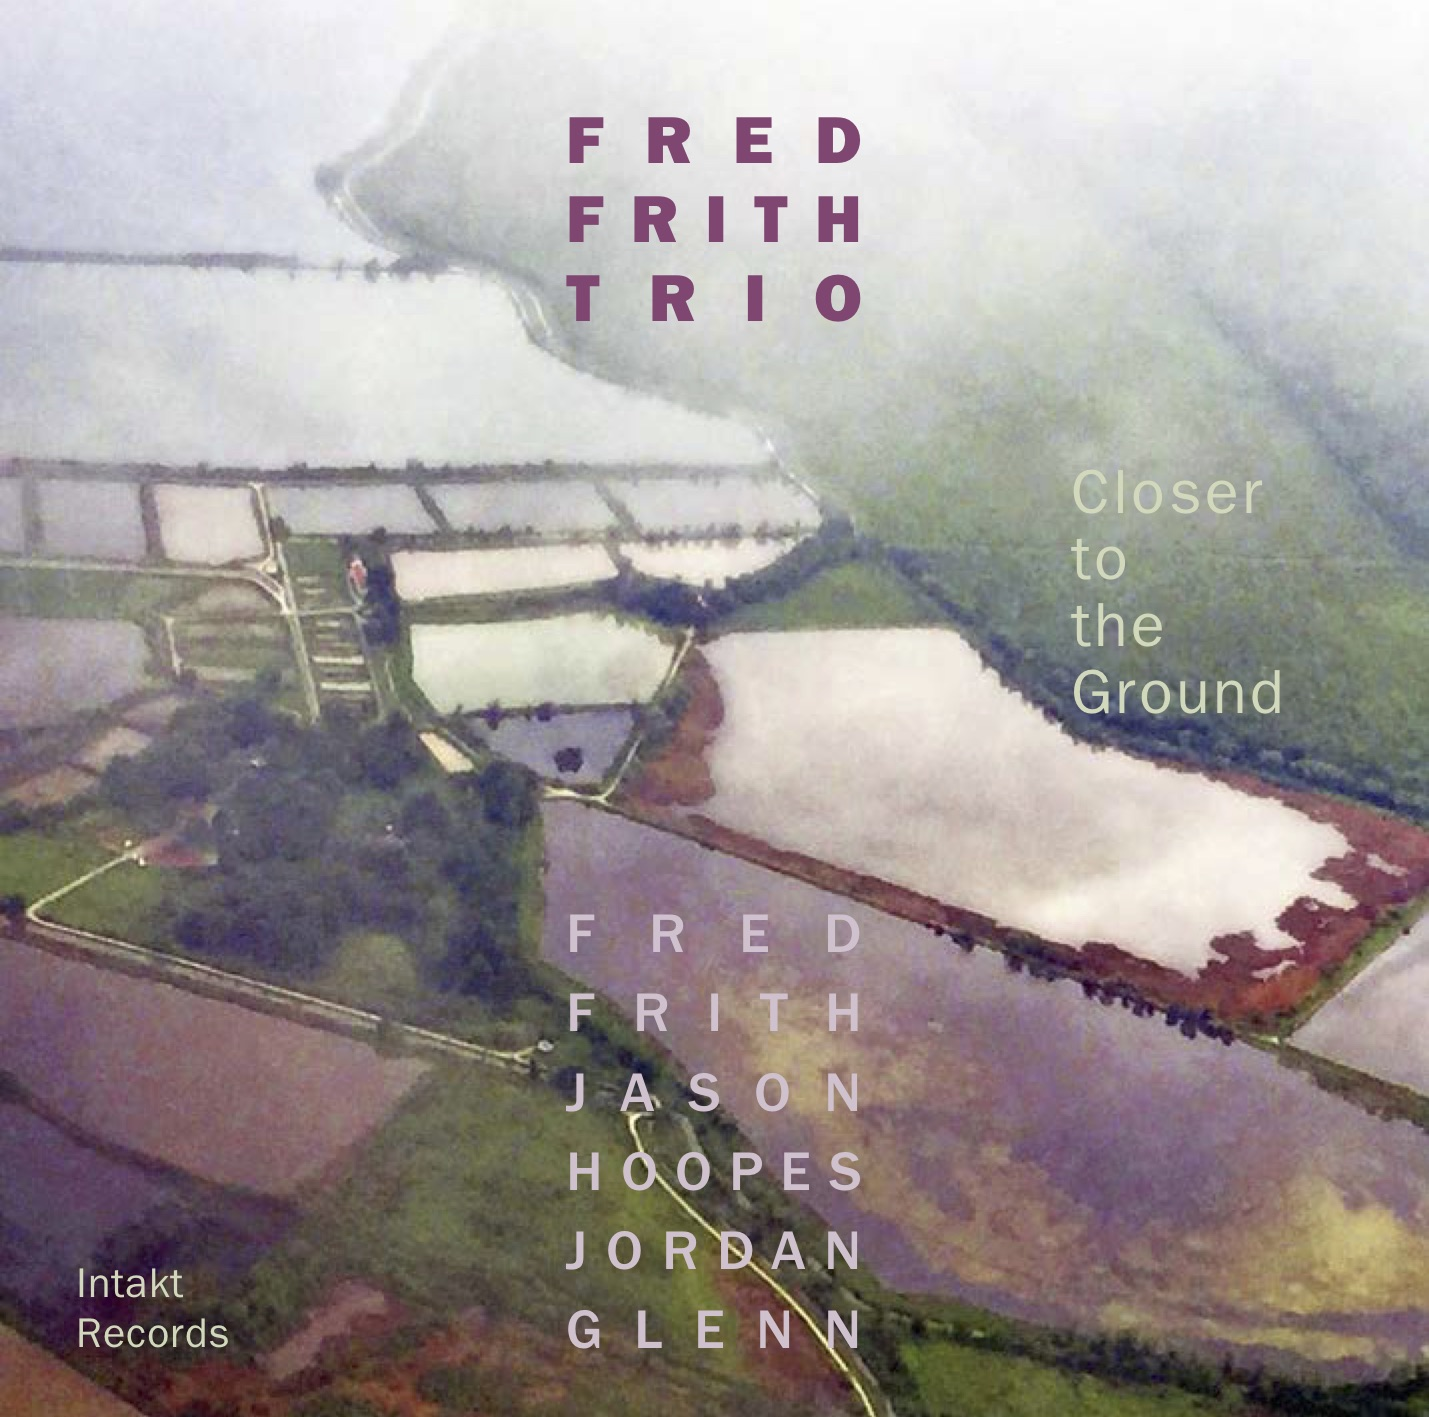 "Closer to the Ground    (2018)    ------- With their second album the Fred Frith Trio with Jason Hoopes (Bass) and Jordan Glenn (Drums) continues to explore the dimension of the guitar trio. ""Closer to the Ground"" is all about sound, mood, texture, ideas, and atmosphere. Playful, intimate, and bound together, the Fred Frith Trio reminds us of what listening is all about. As this is also Frith's touring band, many of these themes were already road tested so even at their most in-the-moment creative, this trio remains dense and tight.      ""Three extravagantly creative musicians employed in making music like we've never heard before,"" writes Canadian critic Raul da Gama.  ""With their previous album ""Another Day in Fucking Paradise"", they made a brilliant debut, the second CD goes even further."" - Karl Lippegaus,      WDR Preview Jazz       ""As an improvising soloist of the highest order, I can't imagine Frith wanting for a single thing more from his latest rhythm section – they lay down metronomic and/or shifting grooves, they create sunset-like colors on which Frith eviscerates and/or gently highlights with an array of engaging tremolo and reverberant effects, and they are acutely aware of their supporting-yet-not-passive role and play and/or don't play accordingly. Bravo to Swiss imprint Intakt Records for being home to such a vital statement from a singular artist and his inventive crew."" - Kevin Coultas,      www.inonthecorner.com       Read further reviews / press at      Intakt"